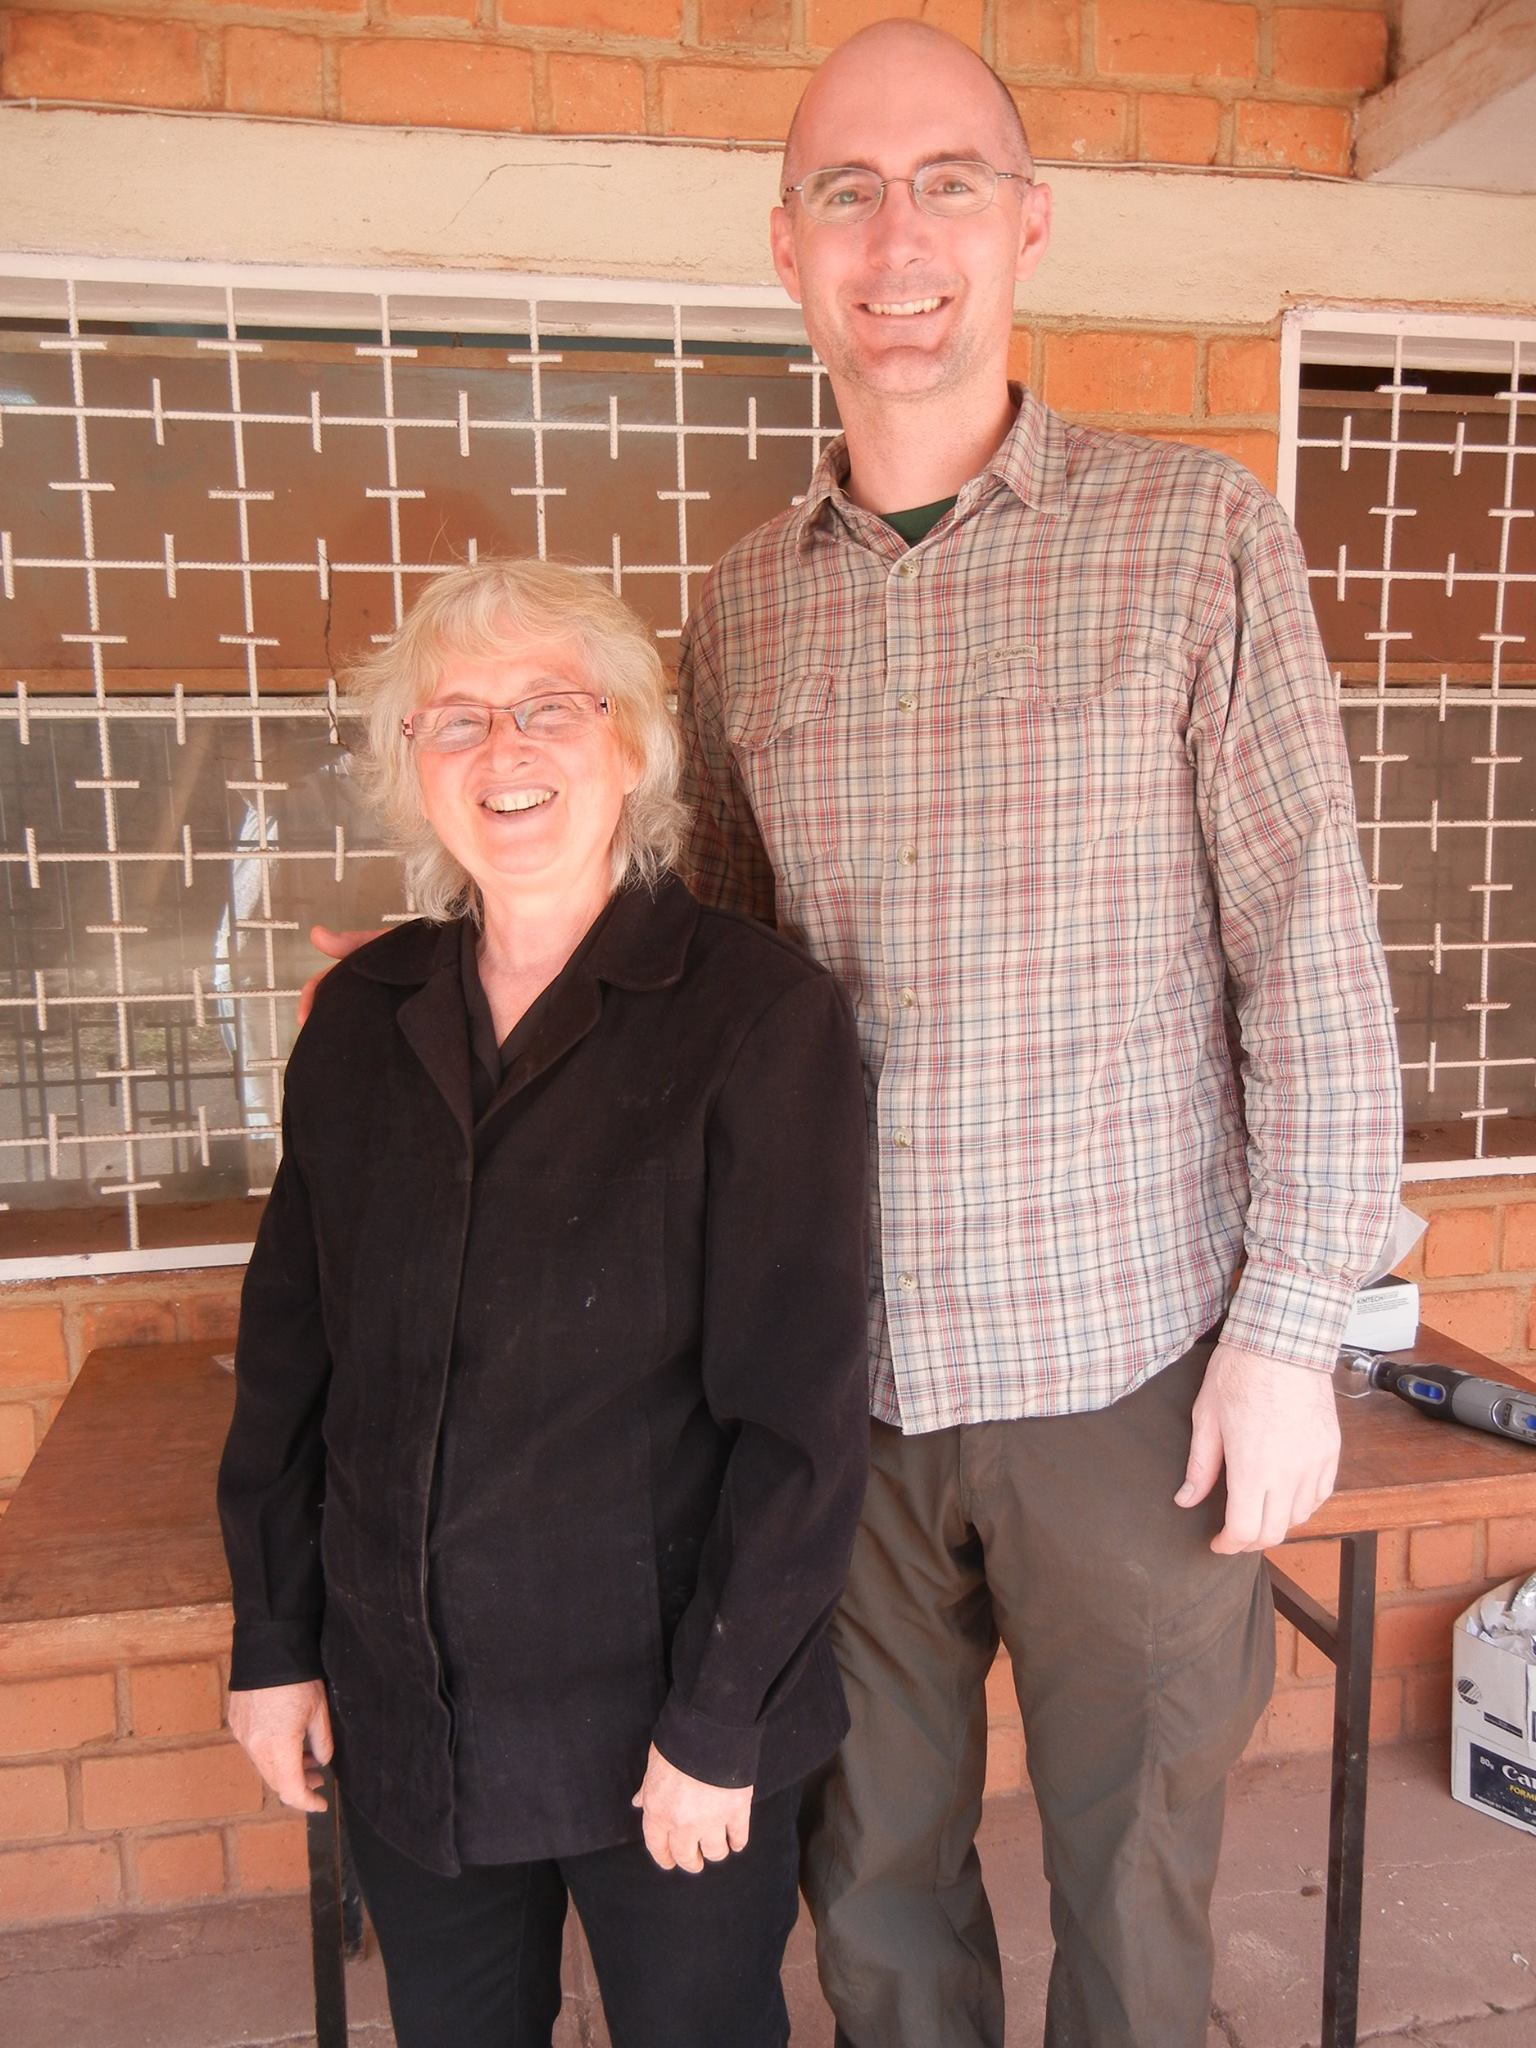 Dr. Perry with our lab's collaborator Dr. Laurie Godfrey (UMass Amherst) at the University of Antananarivo, Madagascar